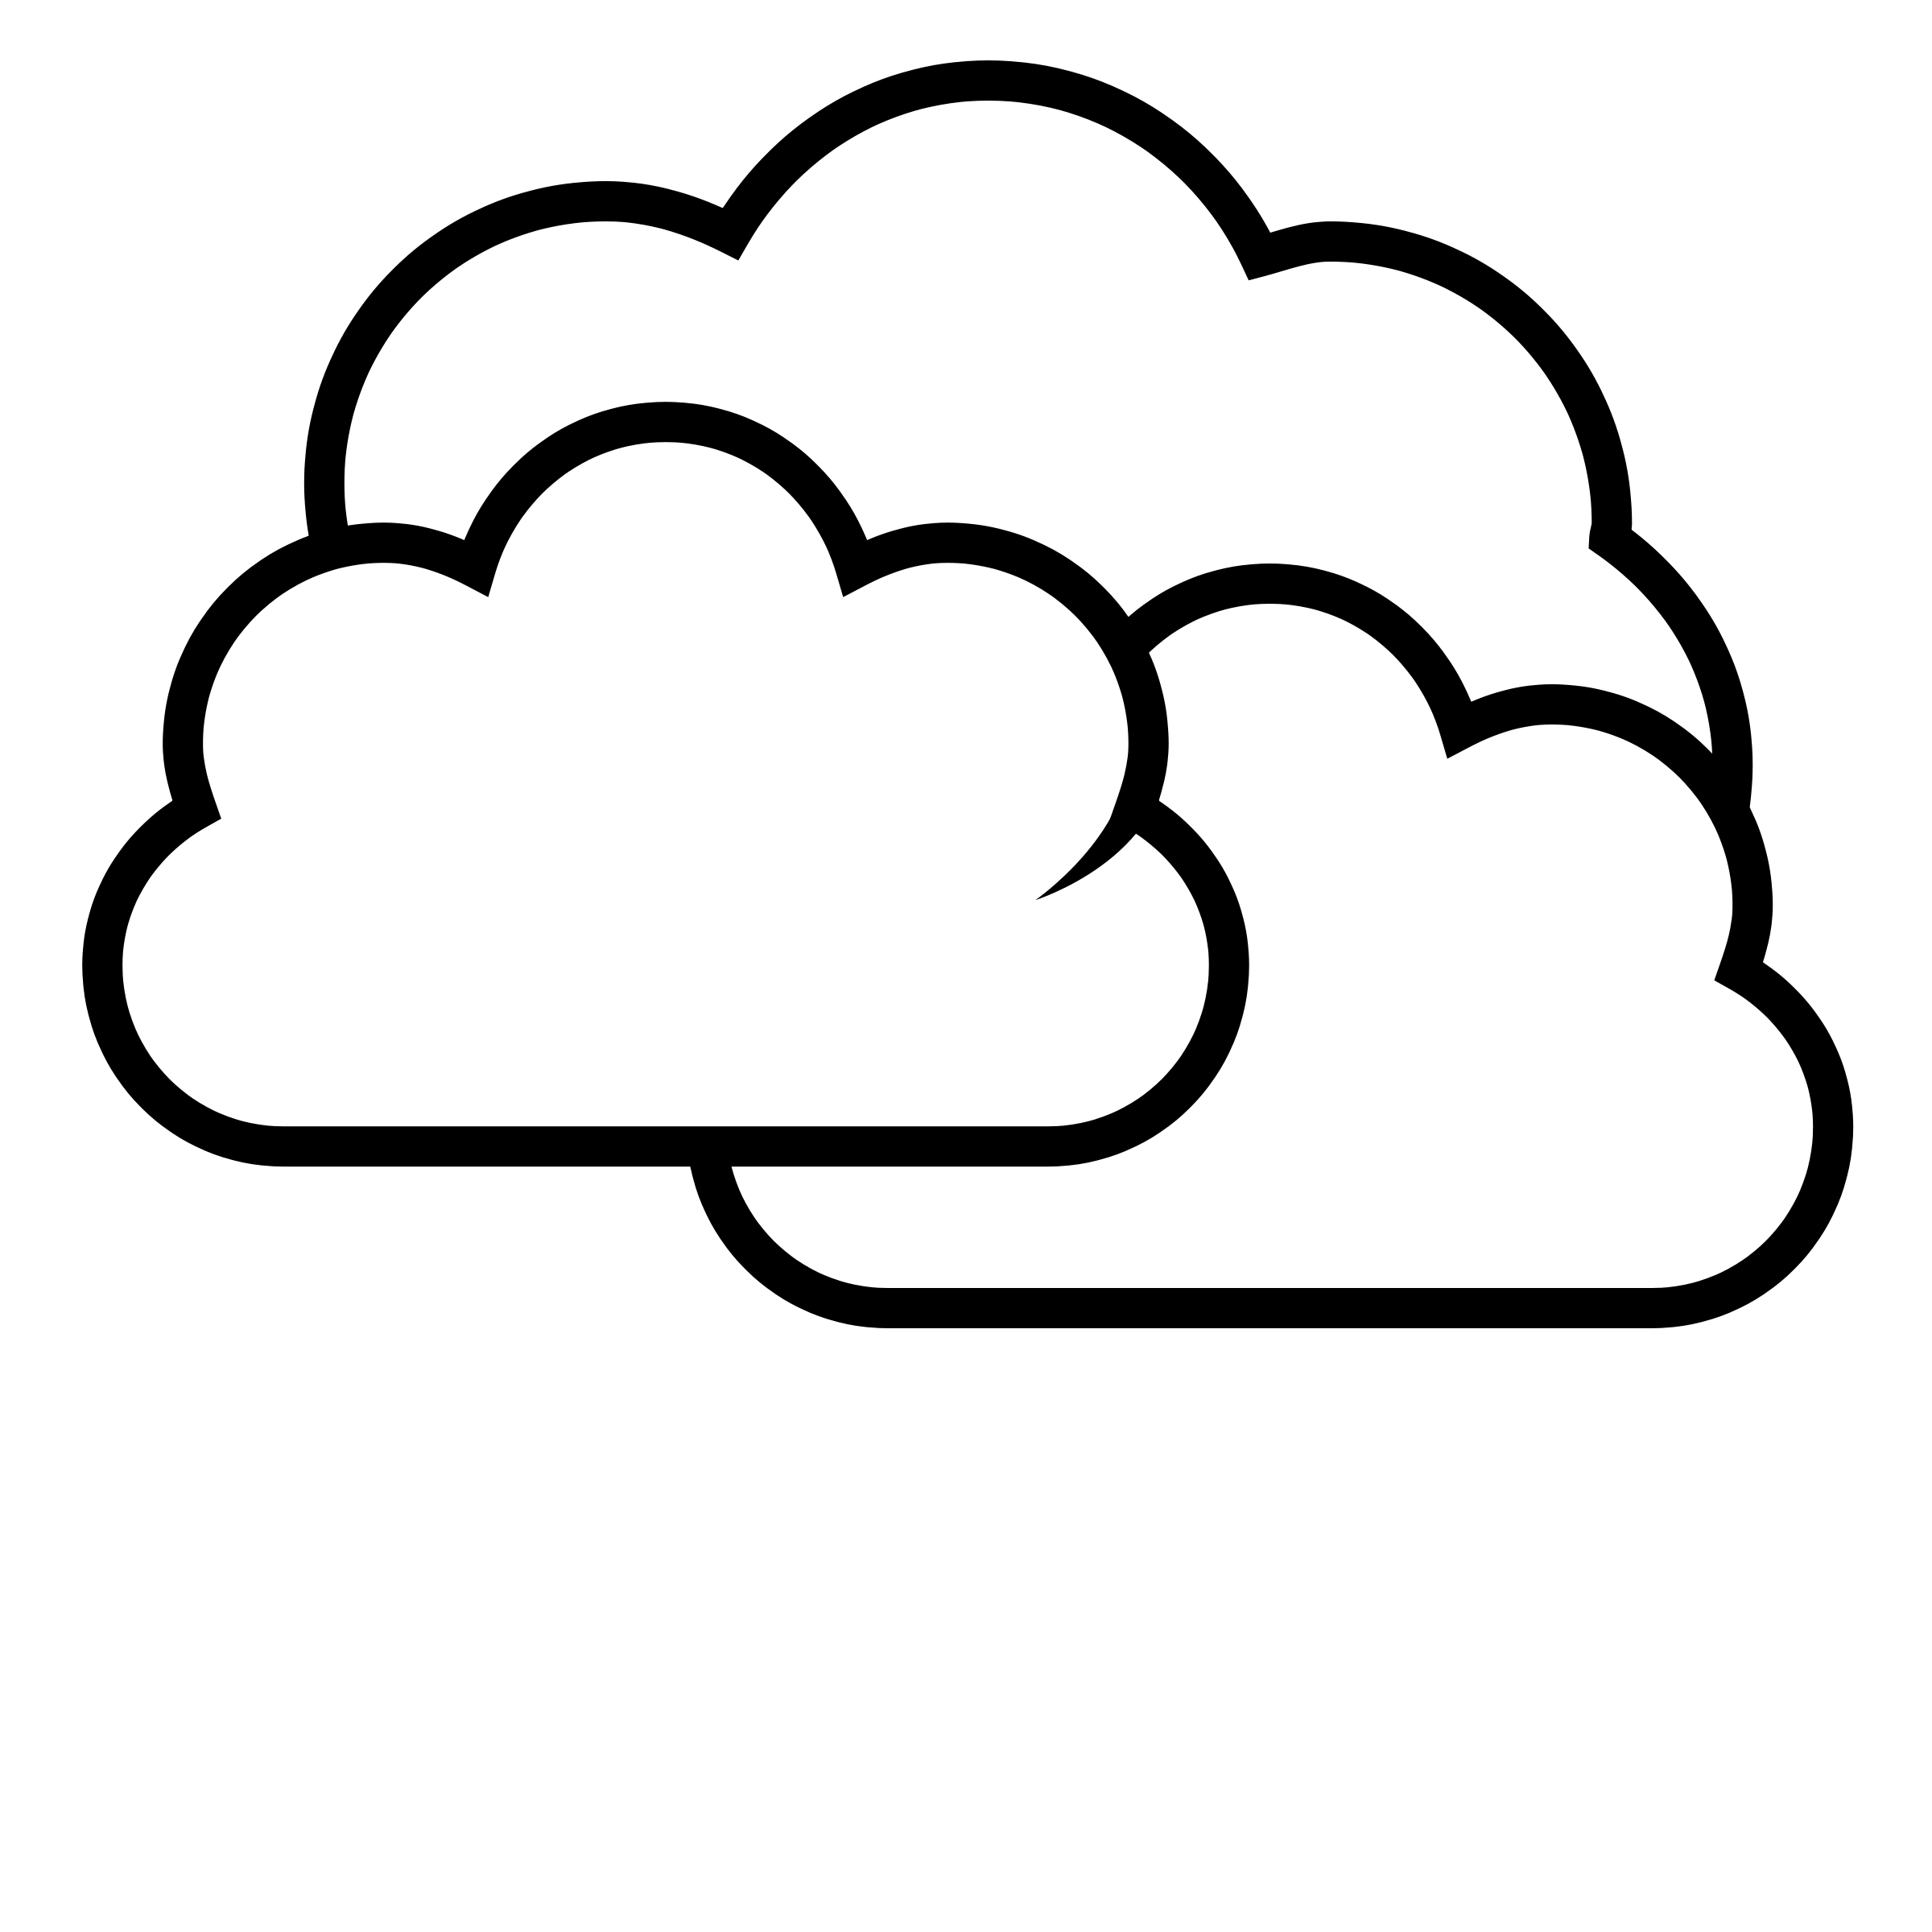 Google images clouds clipart vector library download Free Clip art of Cloud Clipart Black and White #1637 Best Clouds ... vector library download